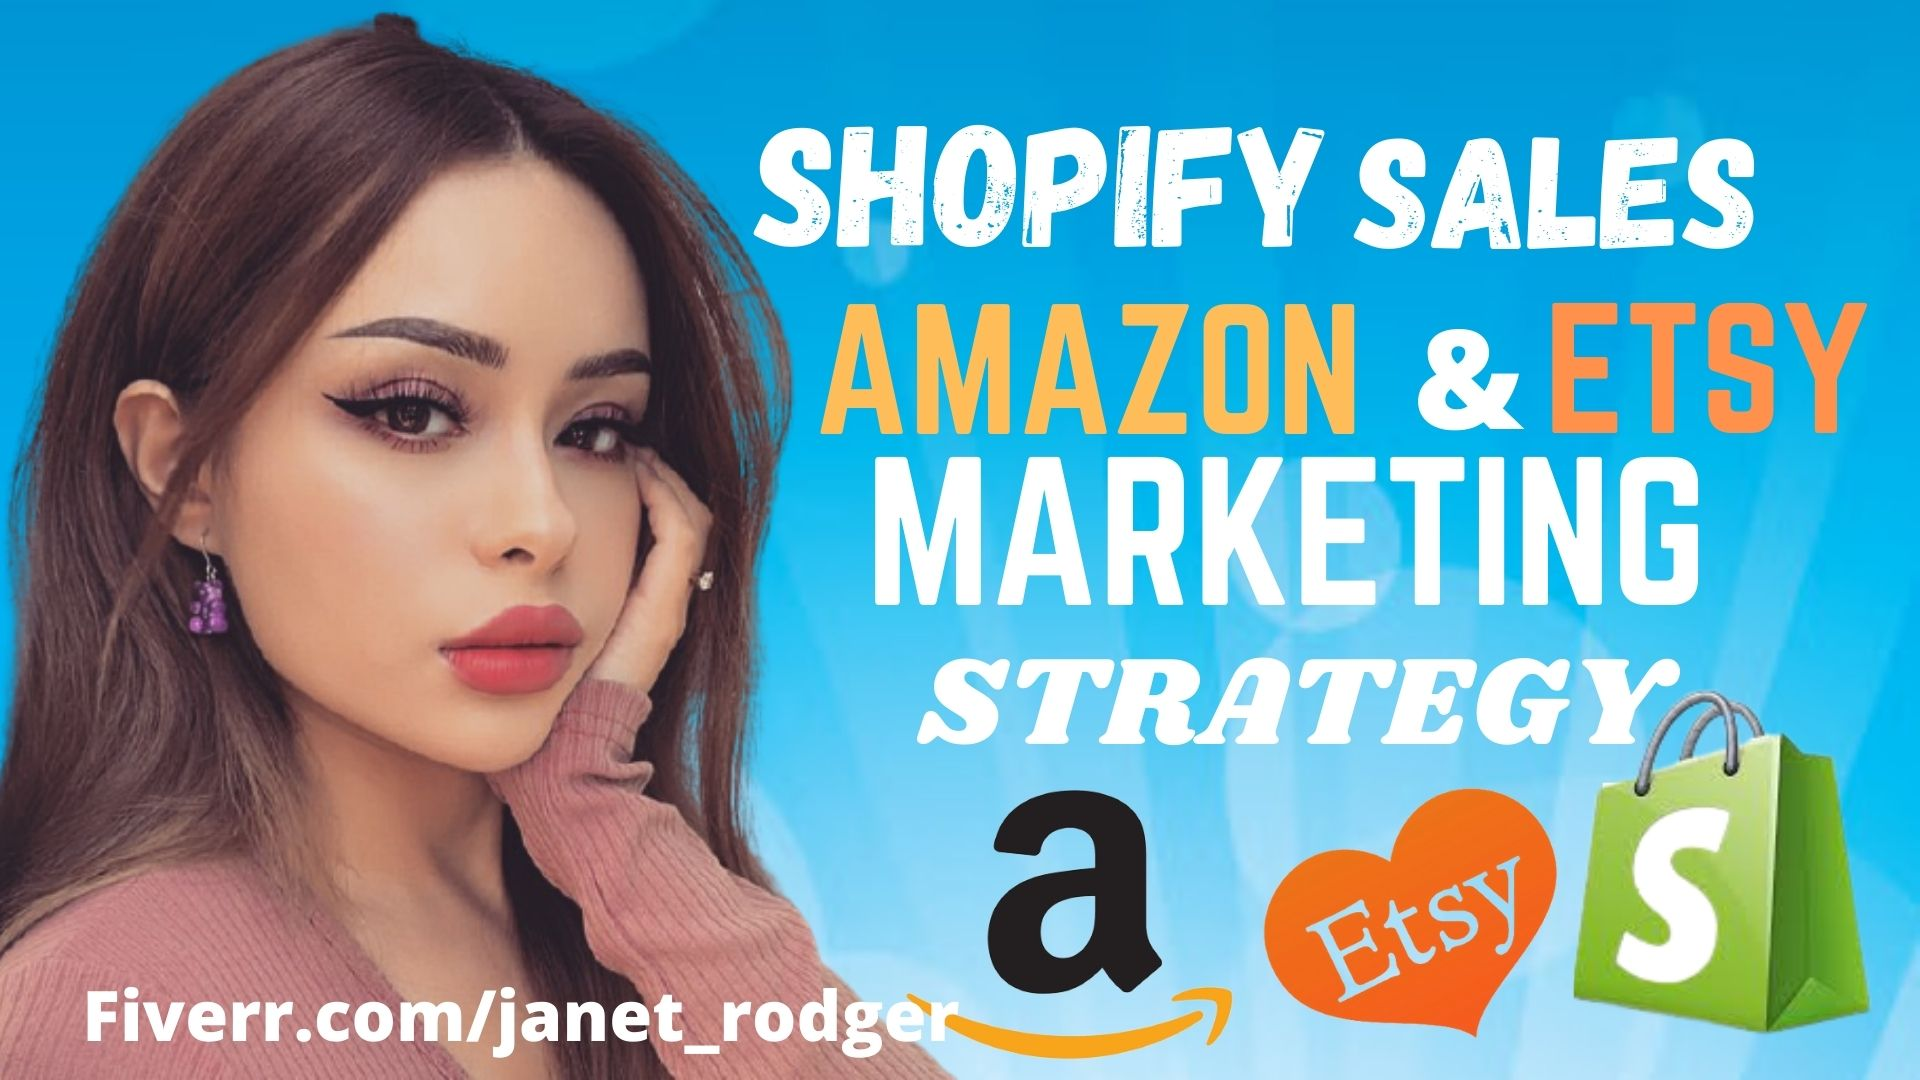 I will amazon teespring etsy shopify ecommerce marketing shopify traffic shopify sales, FiverrBox